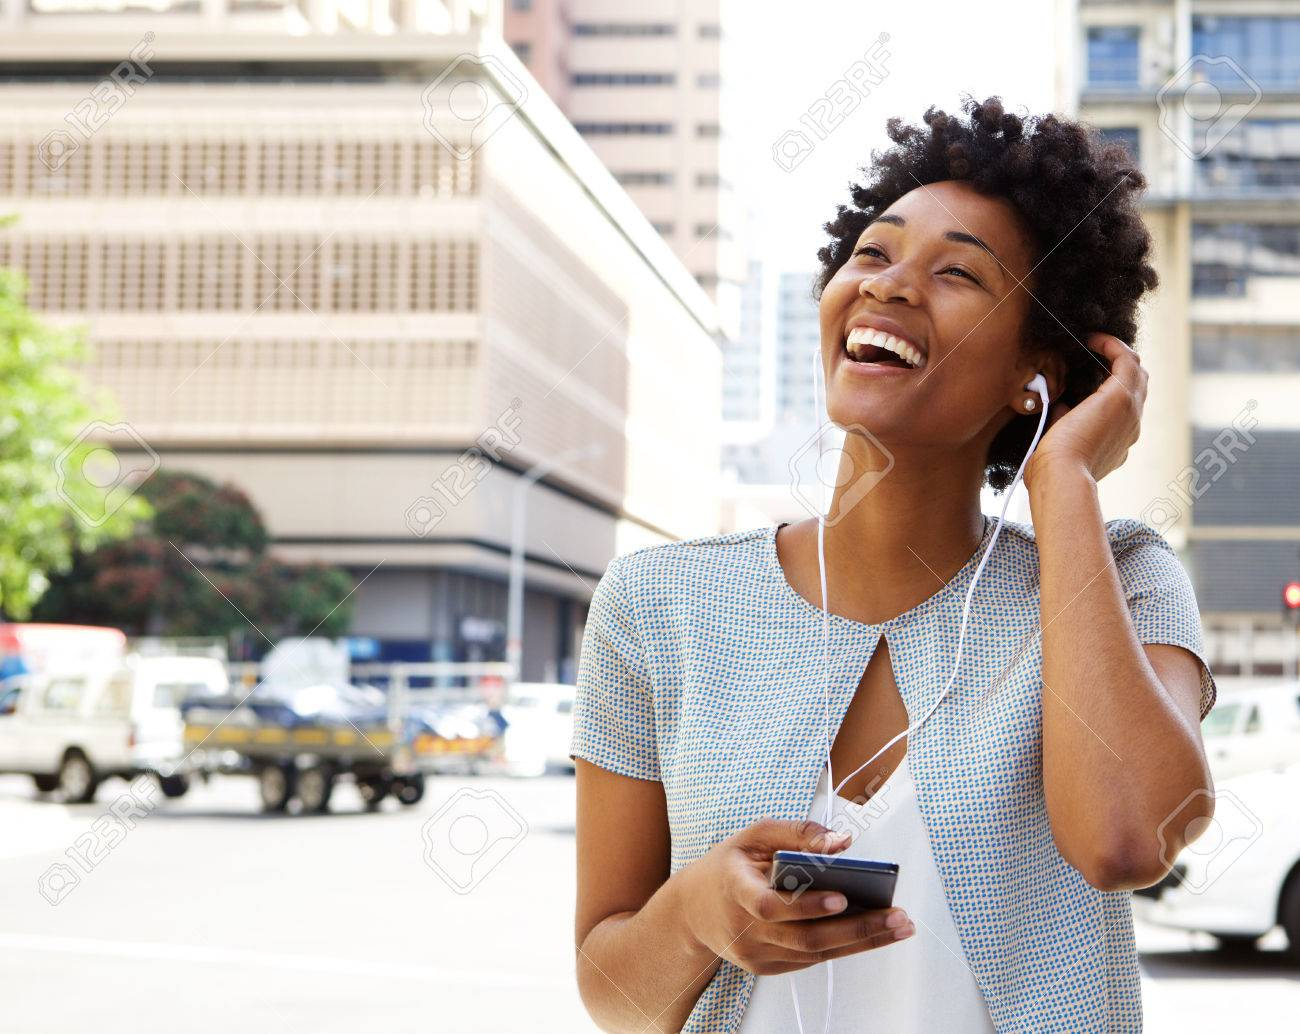 Portrait of smiling young african american woman listening to music on headphones outdoors on city street Standard-Bild - 51497785